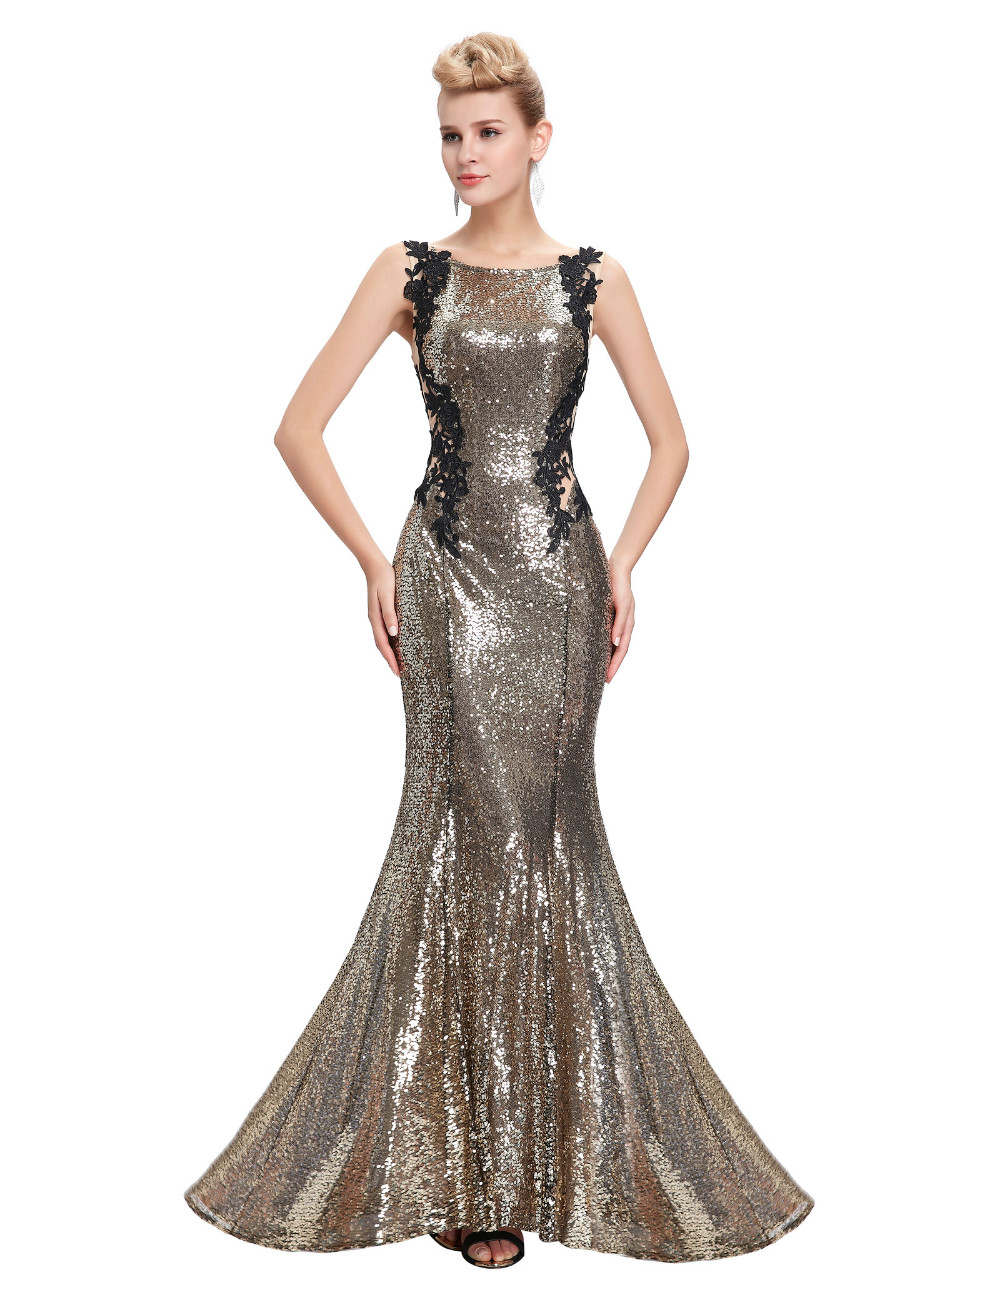 Kate Kasin Mermaid Bridesmaid Dresses Long Dress for Weddings Party Gown 2017 Grey Blue Black Sequin Bridesmaid Dress 0072 9